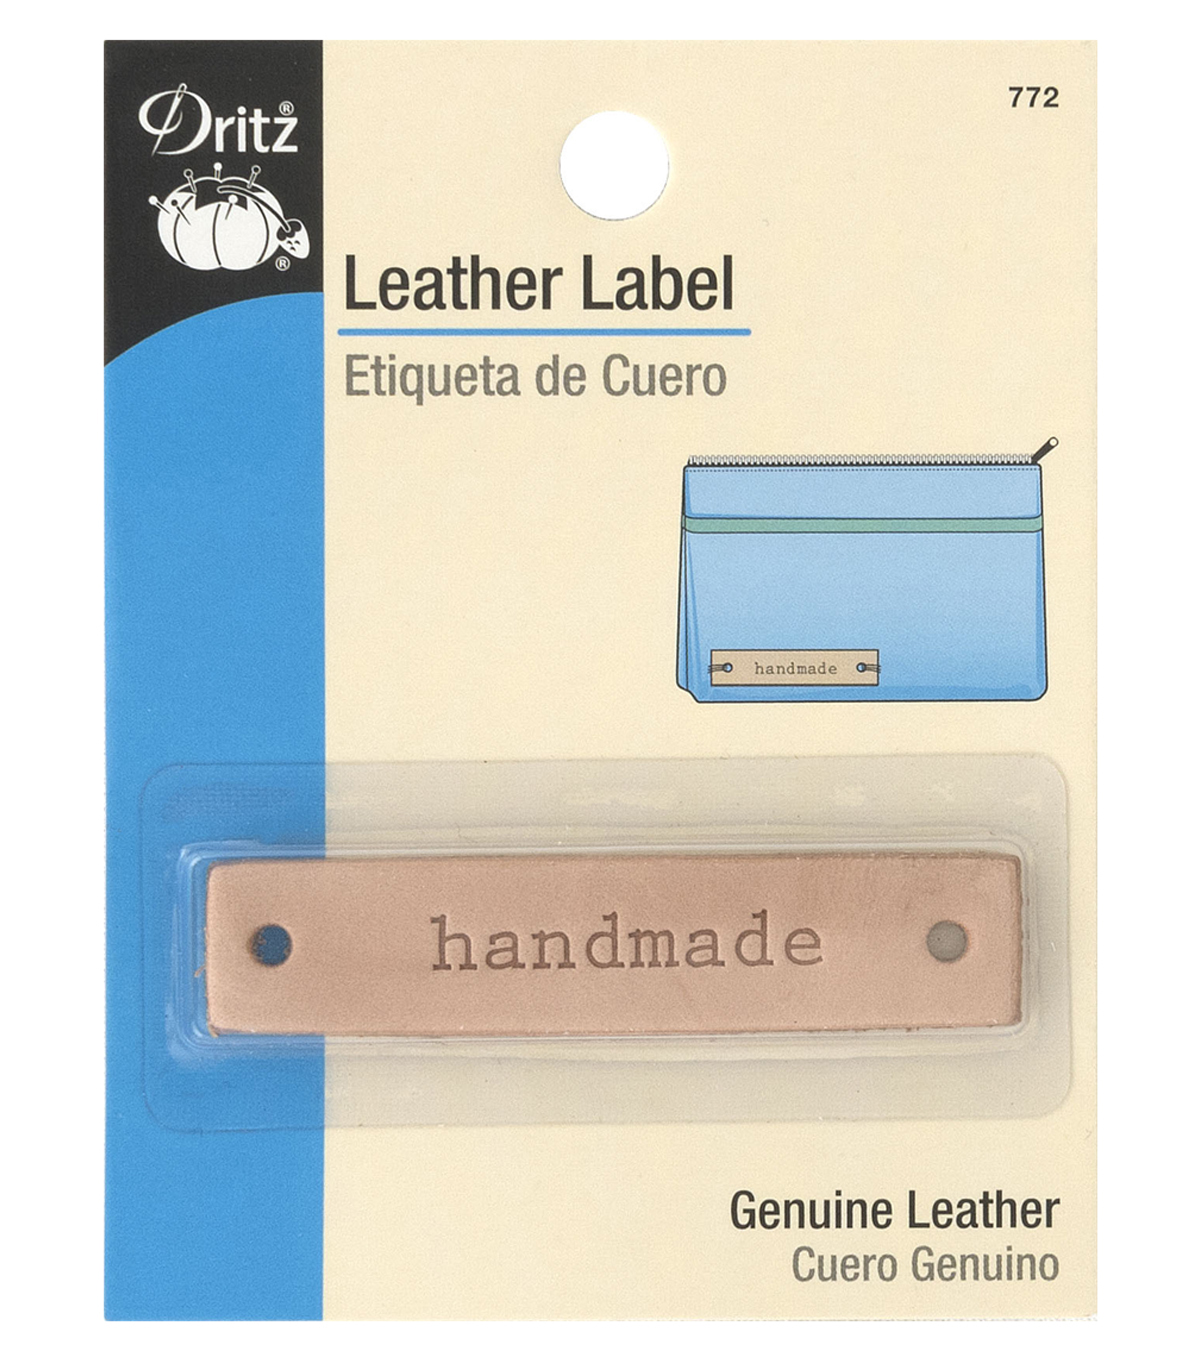 Dritz Leather Rectangle Label-handmade